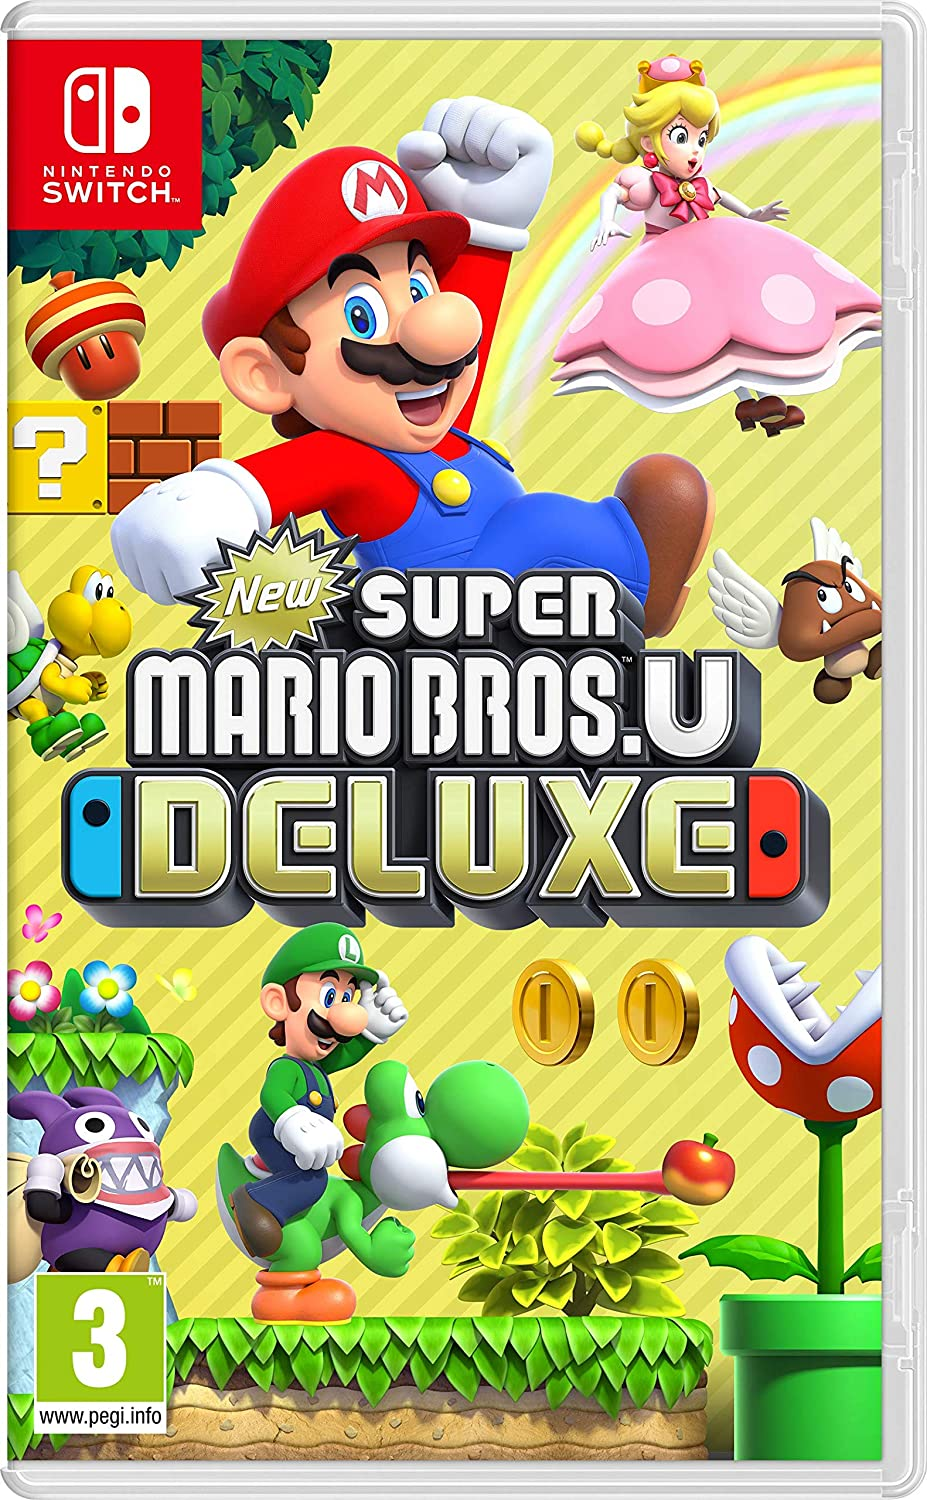 super mario bros wii u deluxe cheats